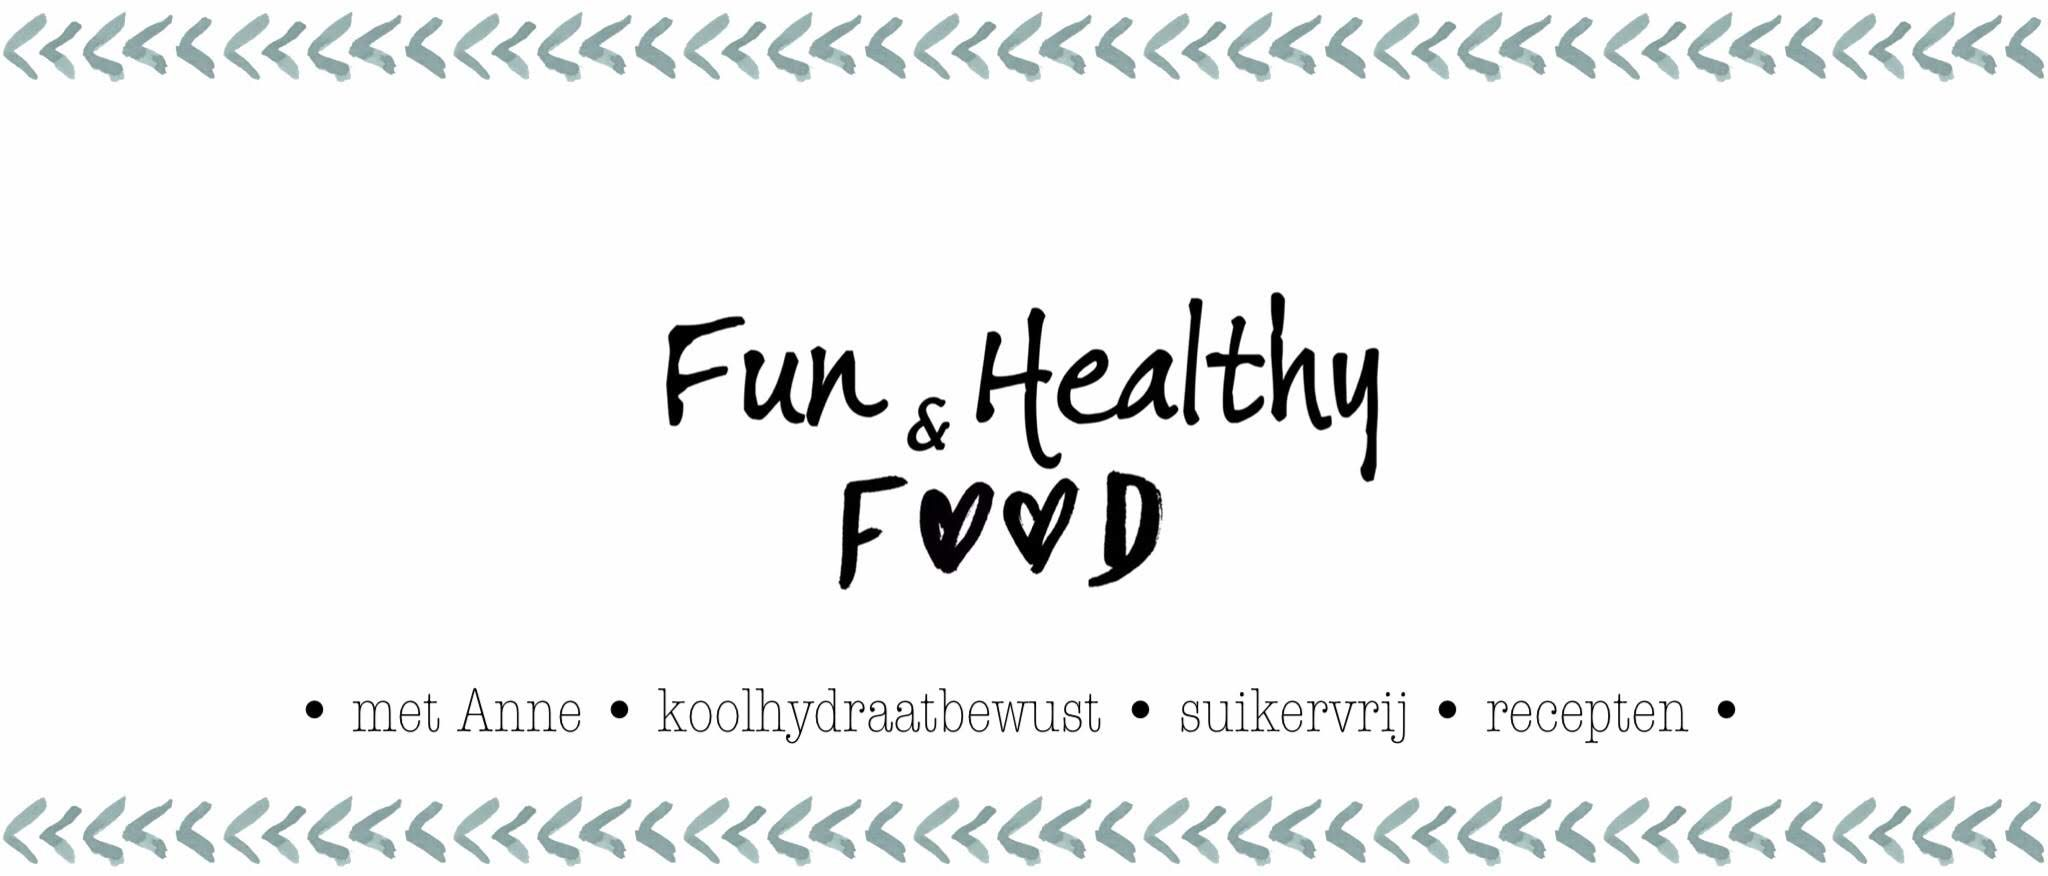 Fun and healthy food